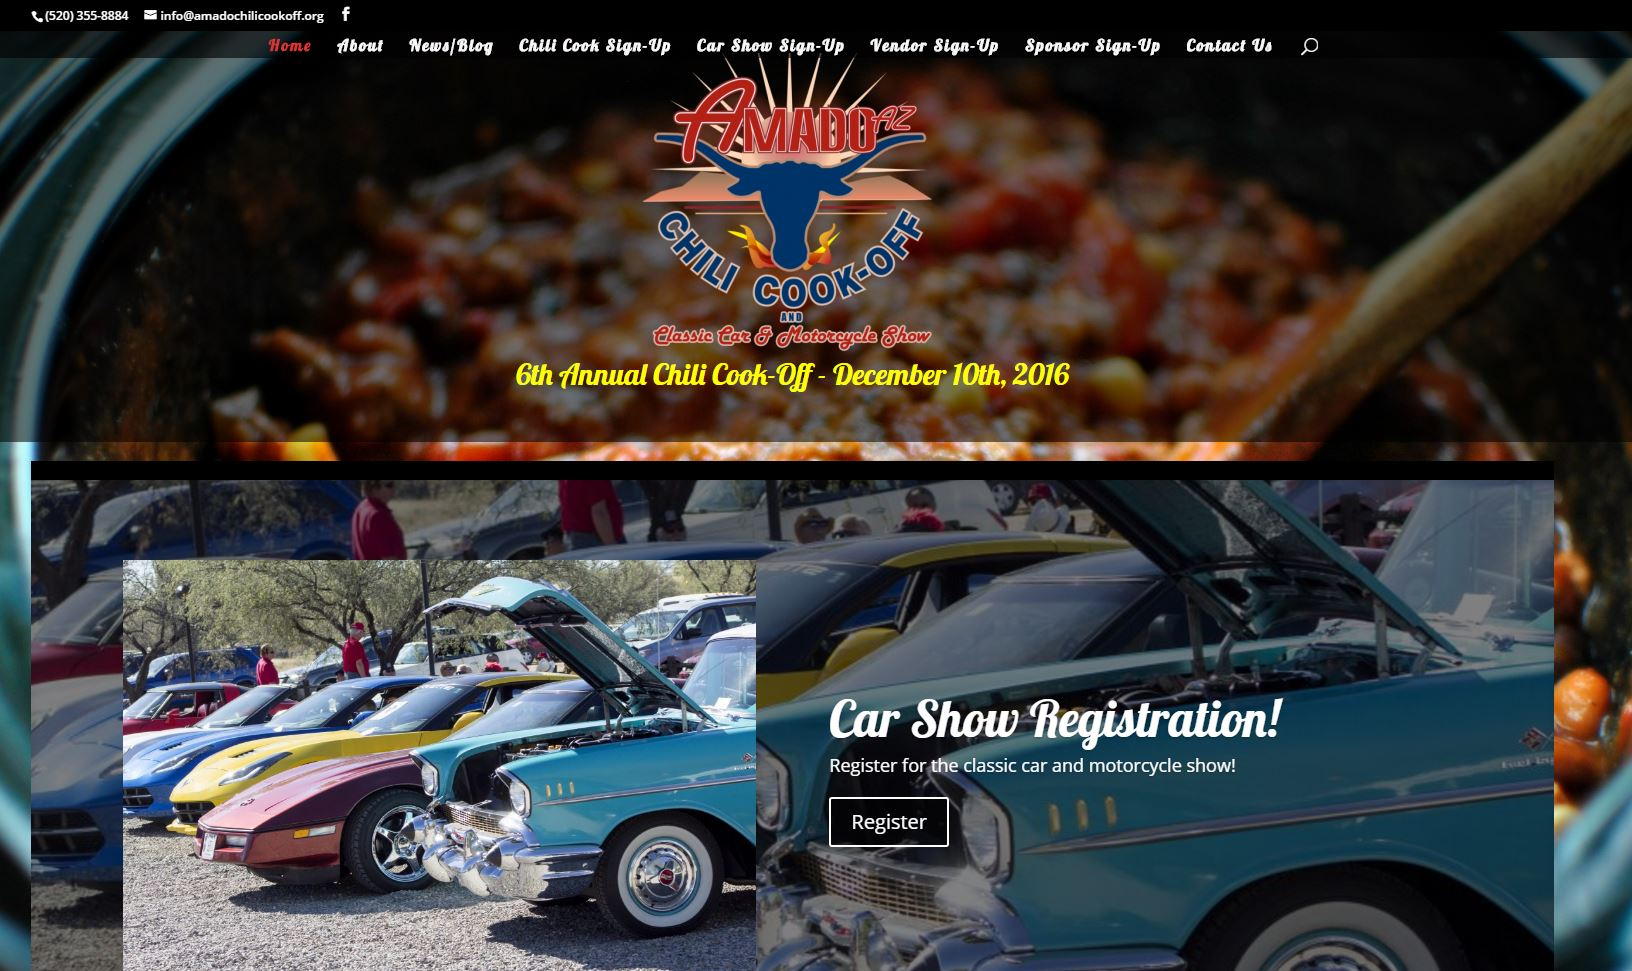 Amado Chili Cook-Off and Classic Car Show website